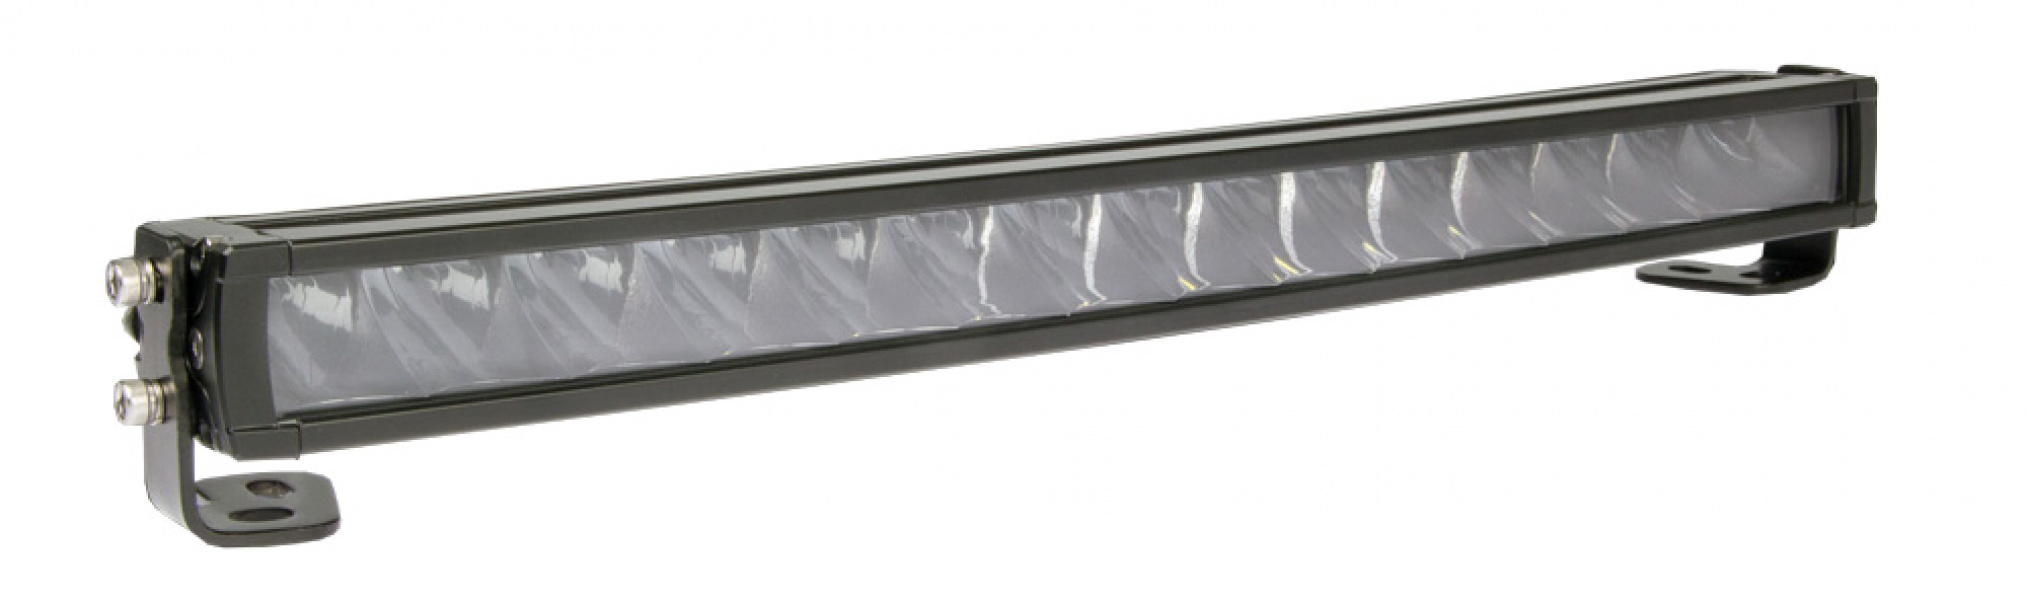 LED-Ramp W-Light Wave 105W Curved